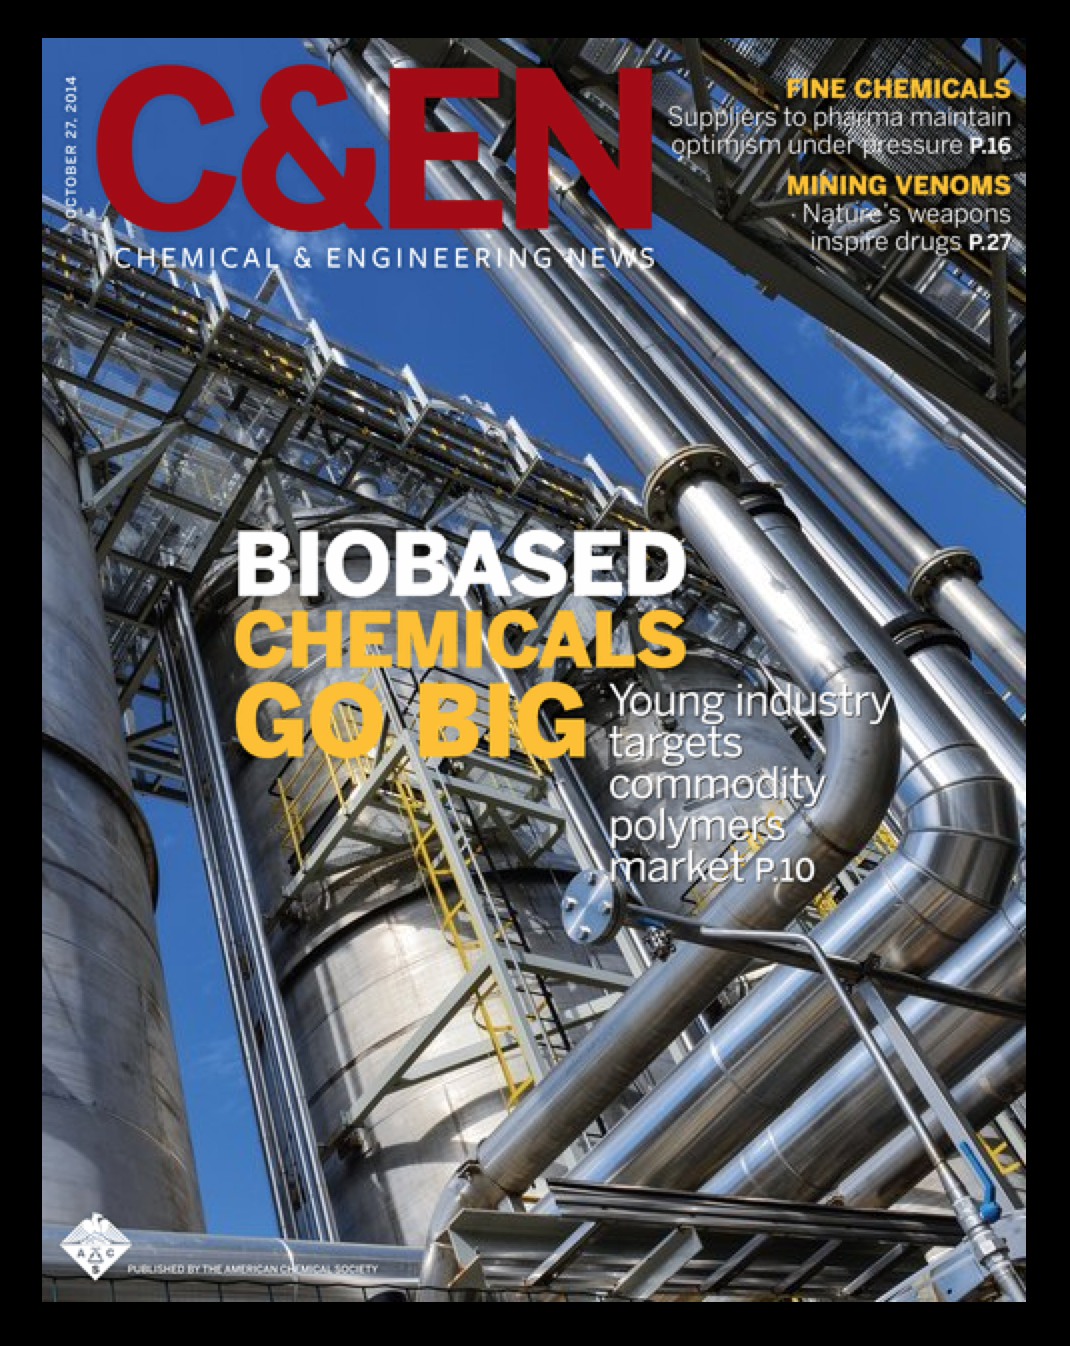 Article: Chemical & Engineering News 掲載